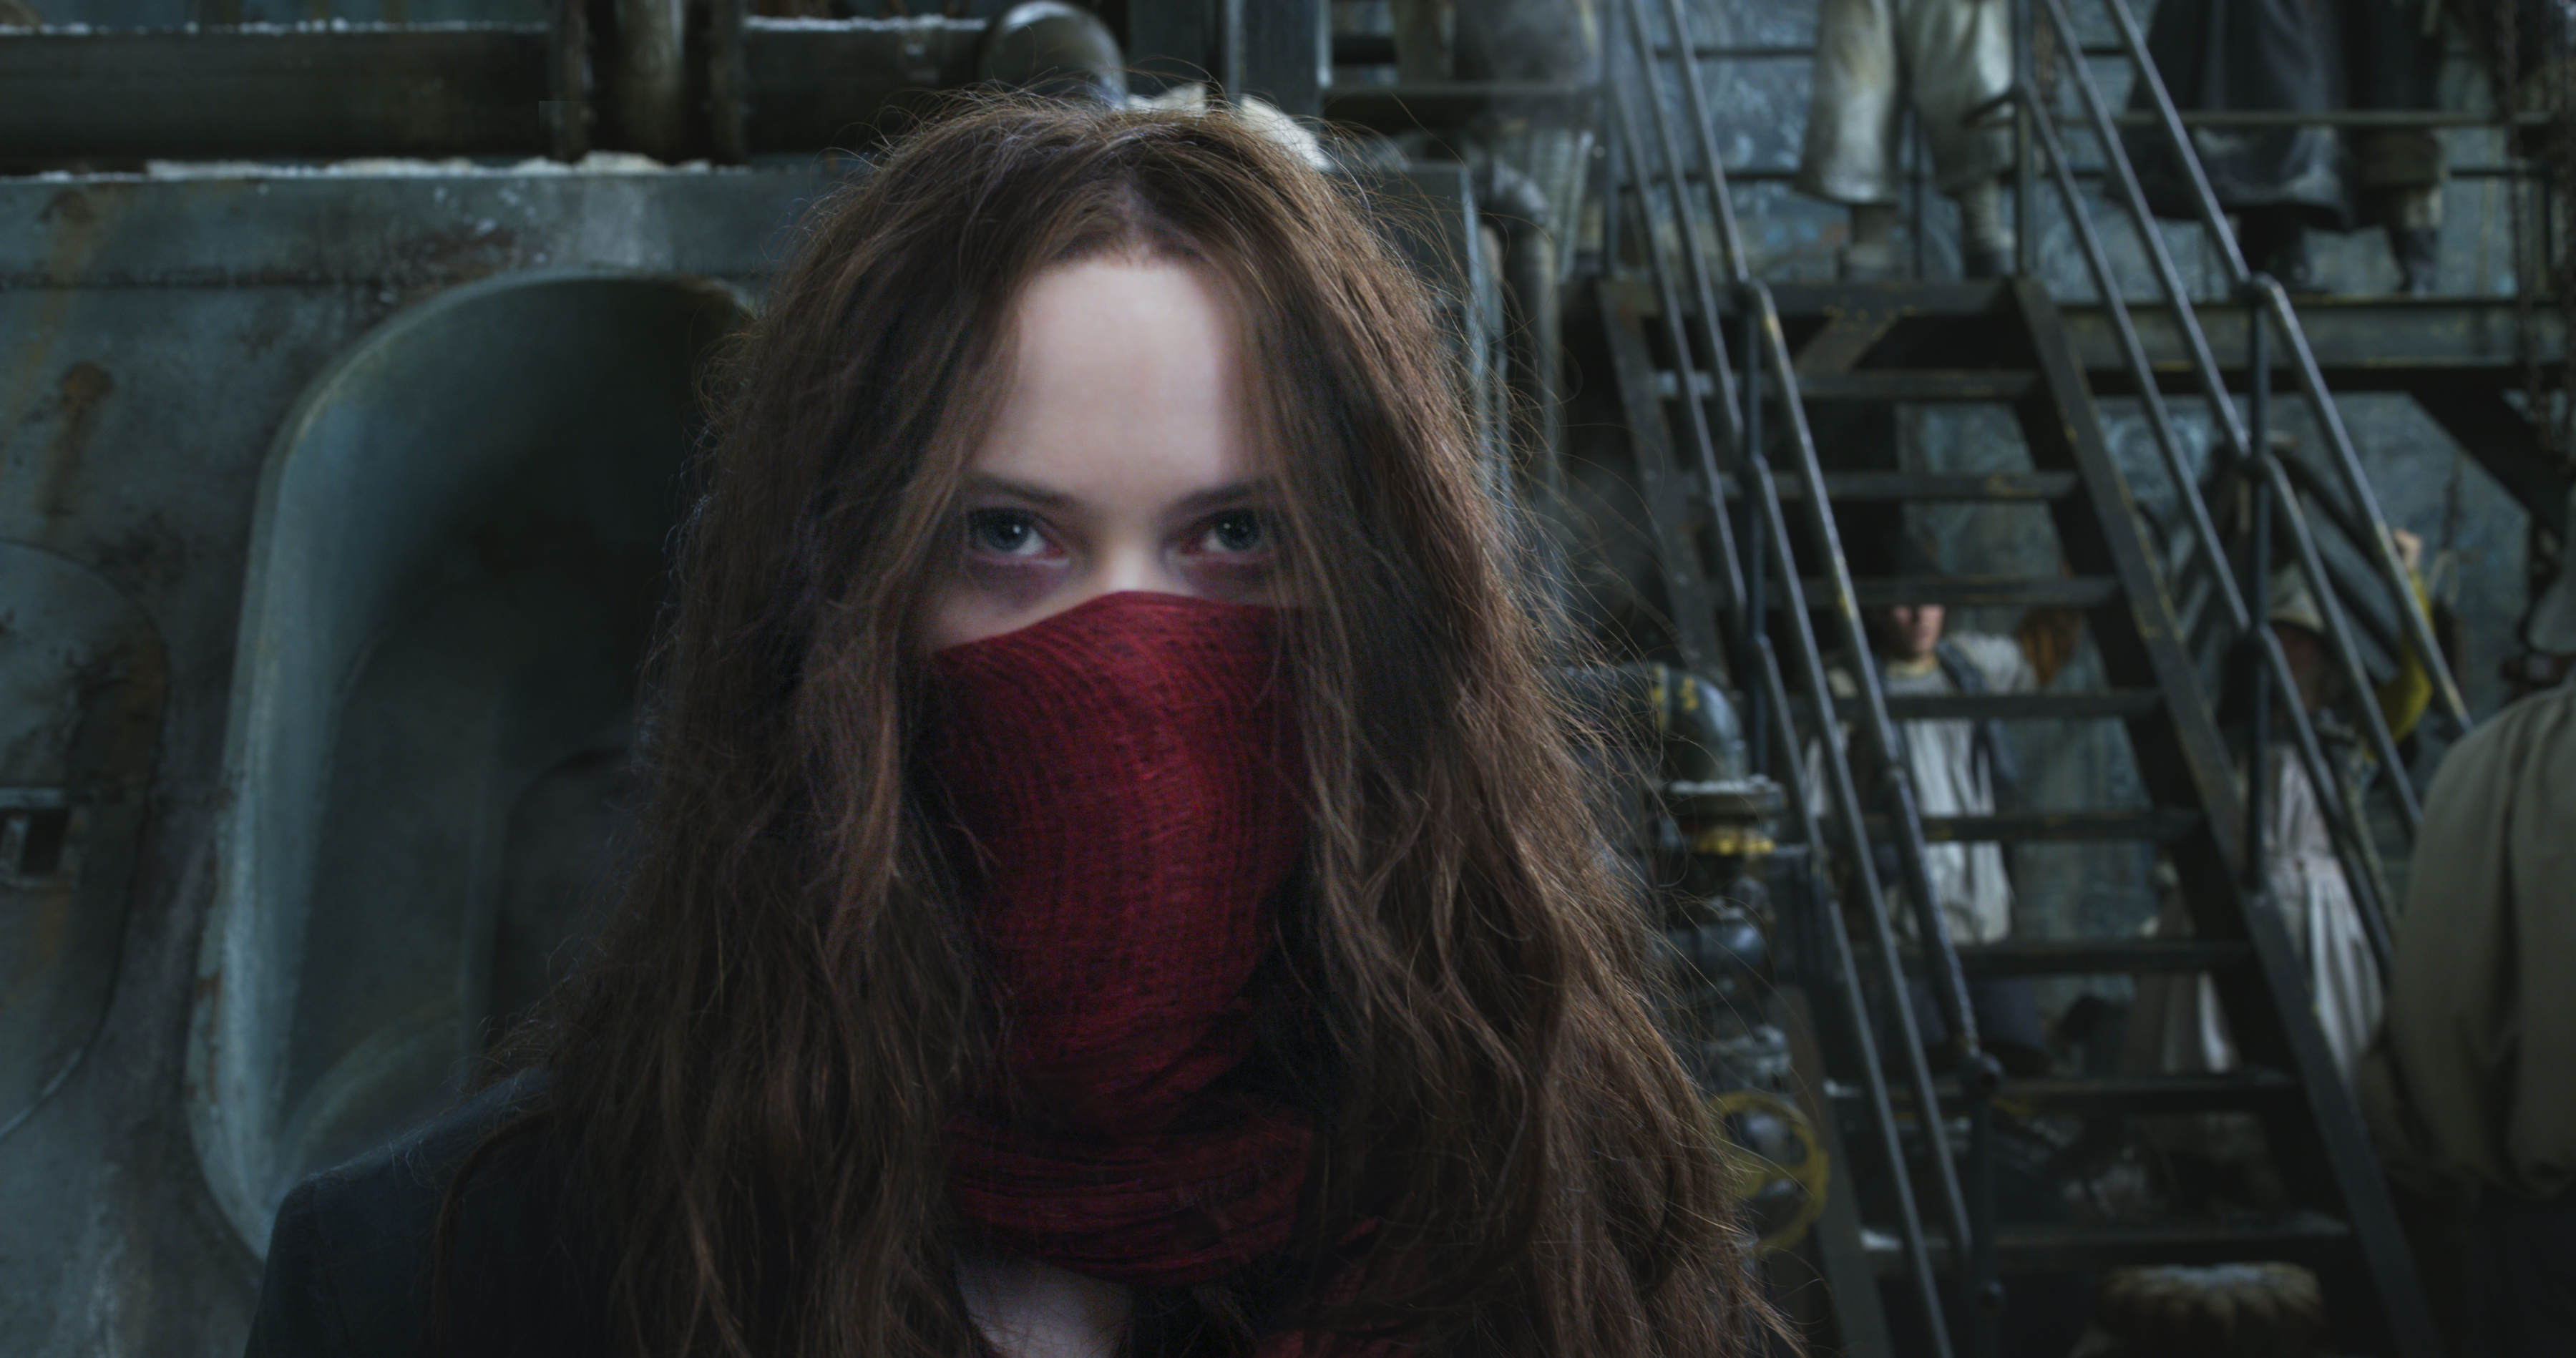 After breaking up The Hobbit, Peter Jackson is keeping Mortal Engines as one movie